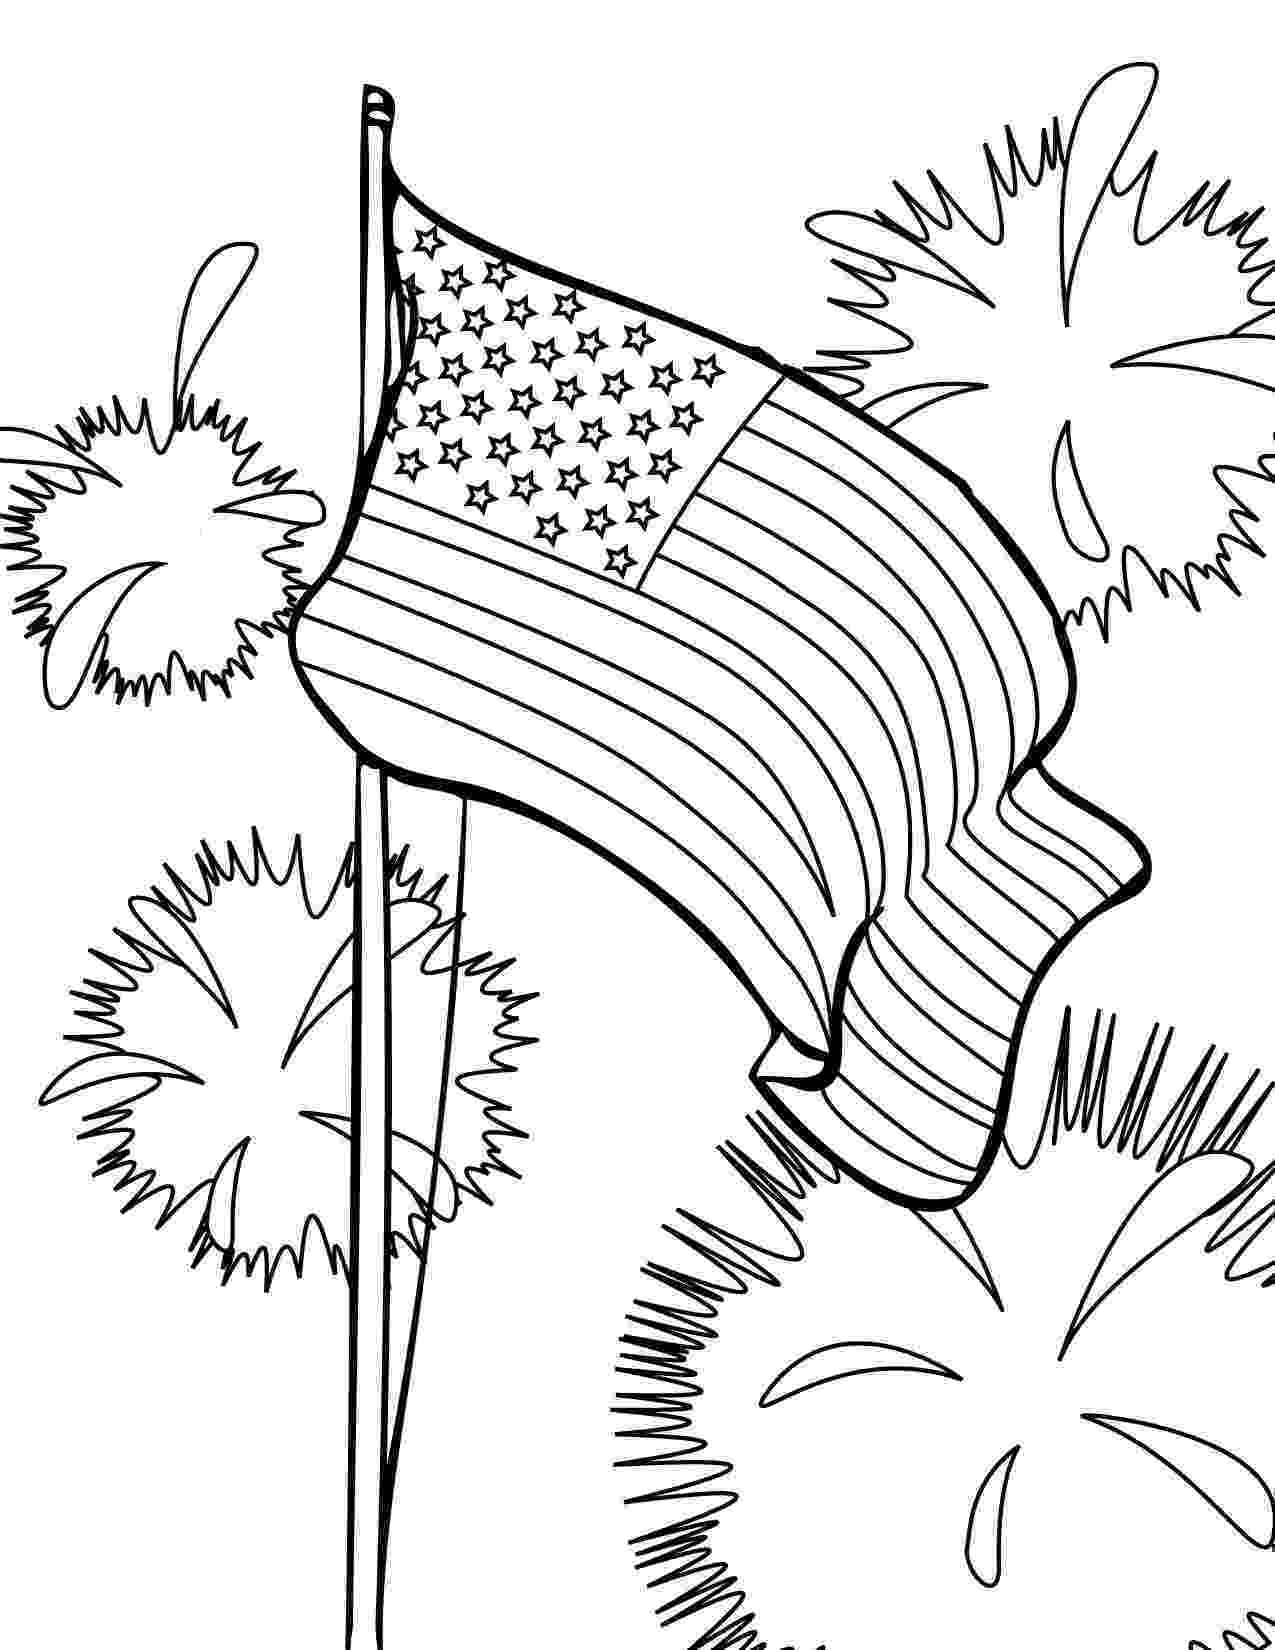 american flag to color american flag coloring pages best coloring pages for kids american color to flag